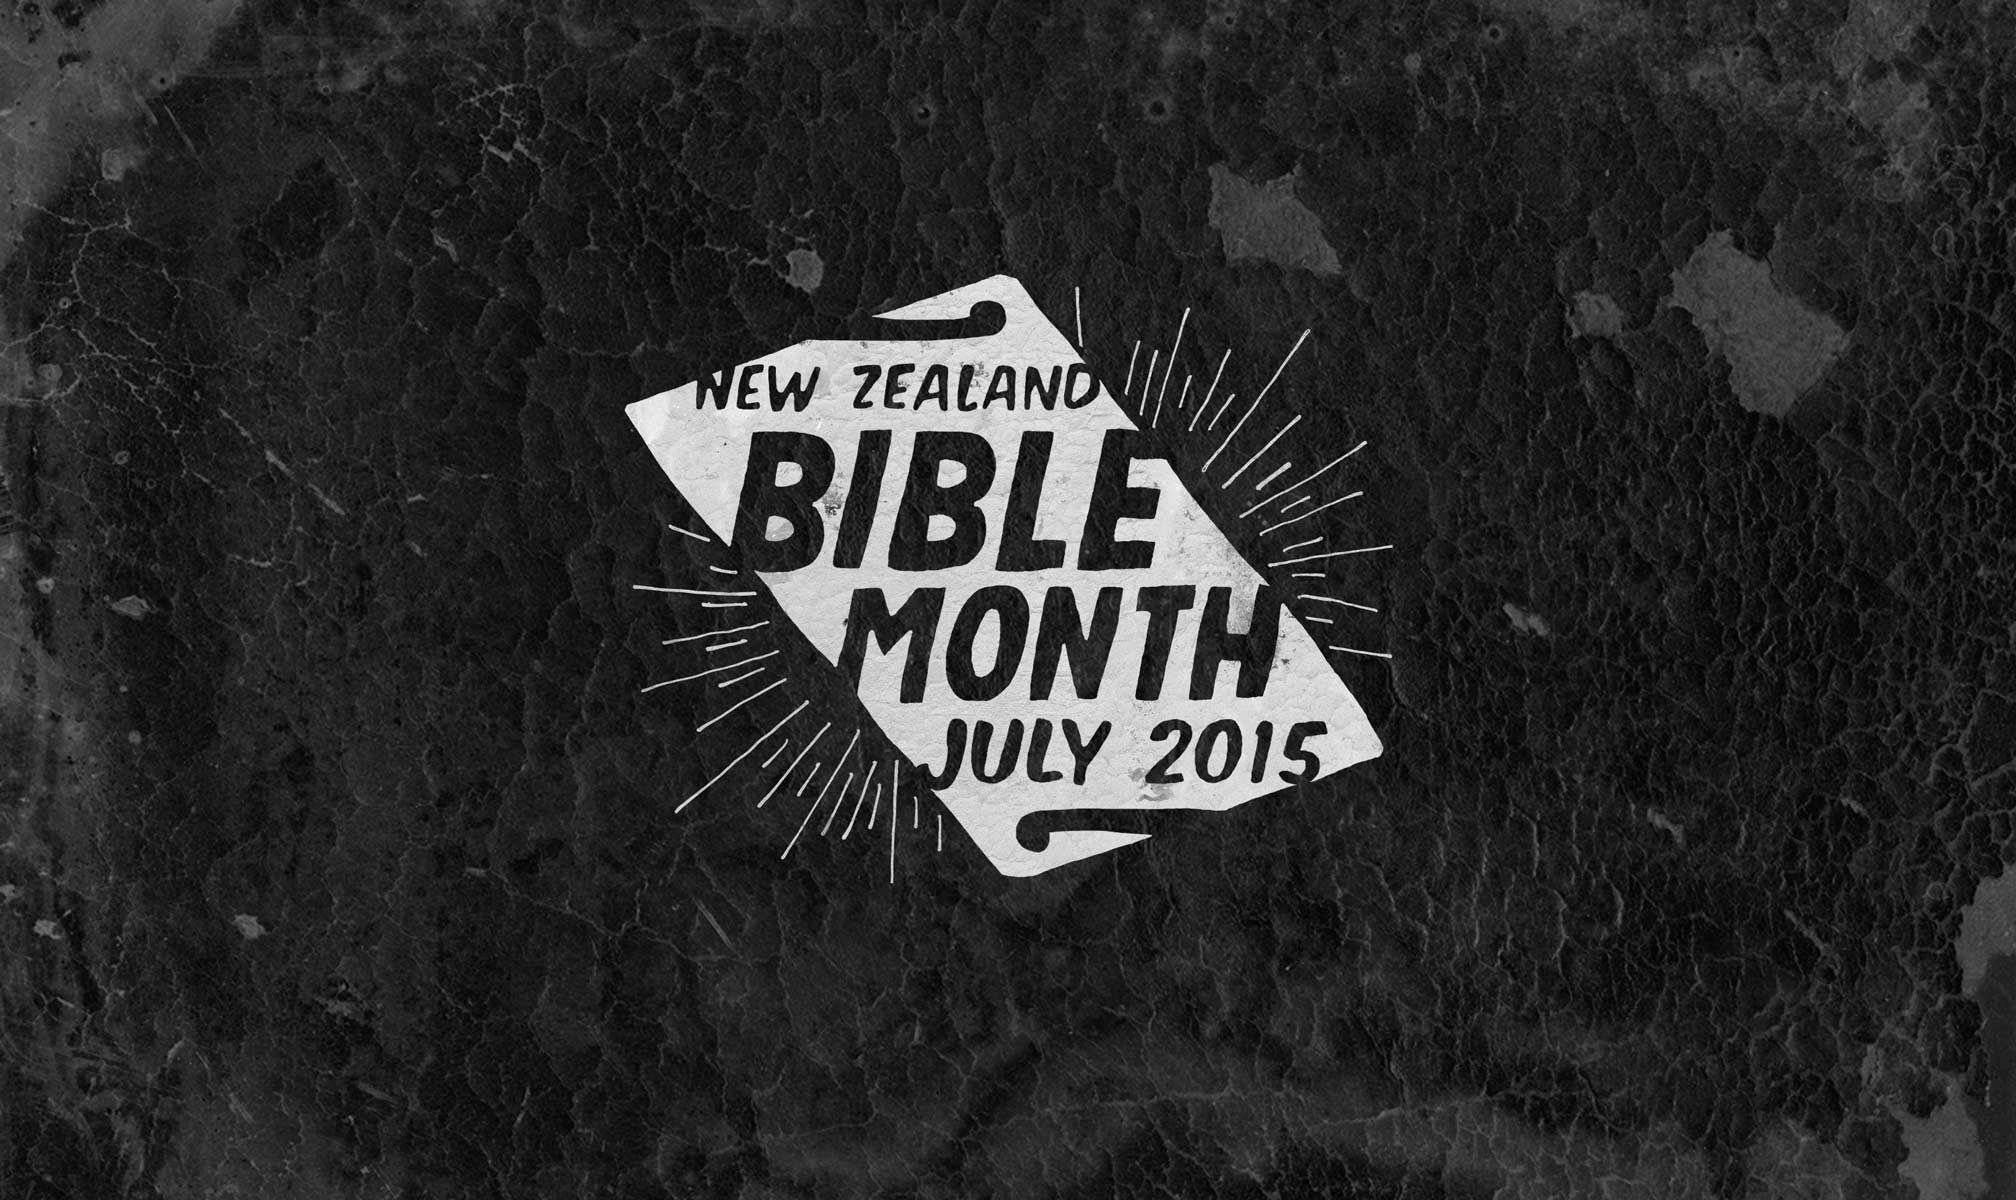 The NZ Bible Month campaign identity combines an angled leather Bible, a halo, kiwiana motifs and handcrafted type.